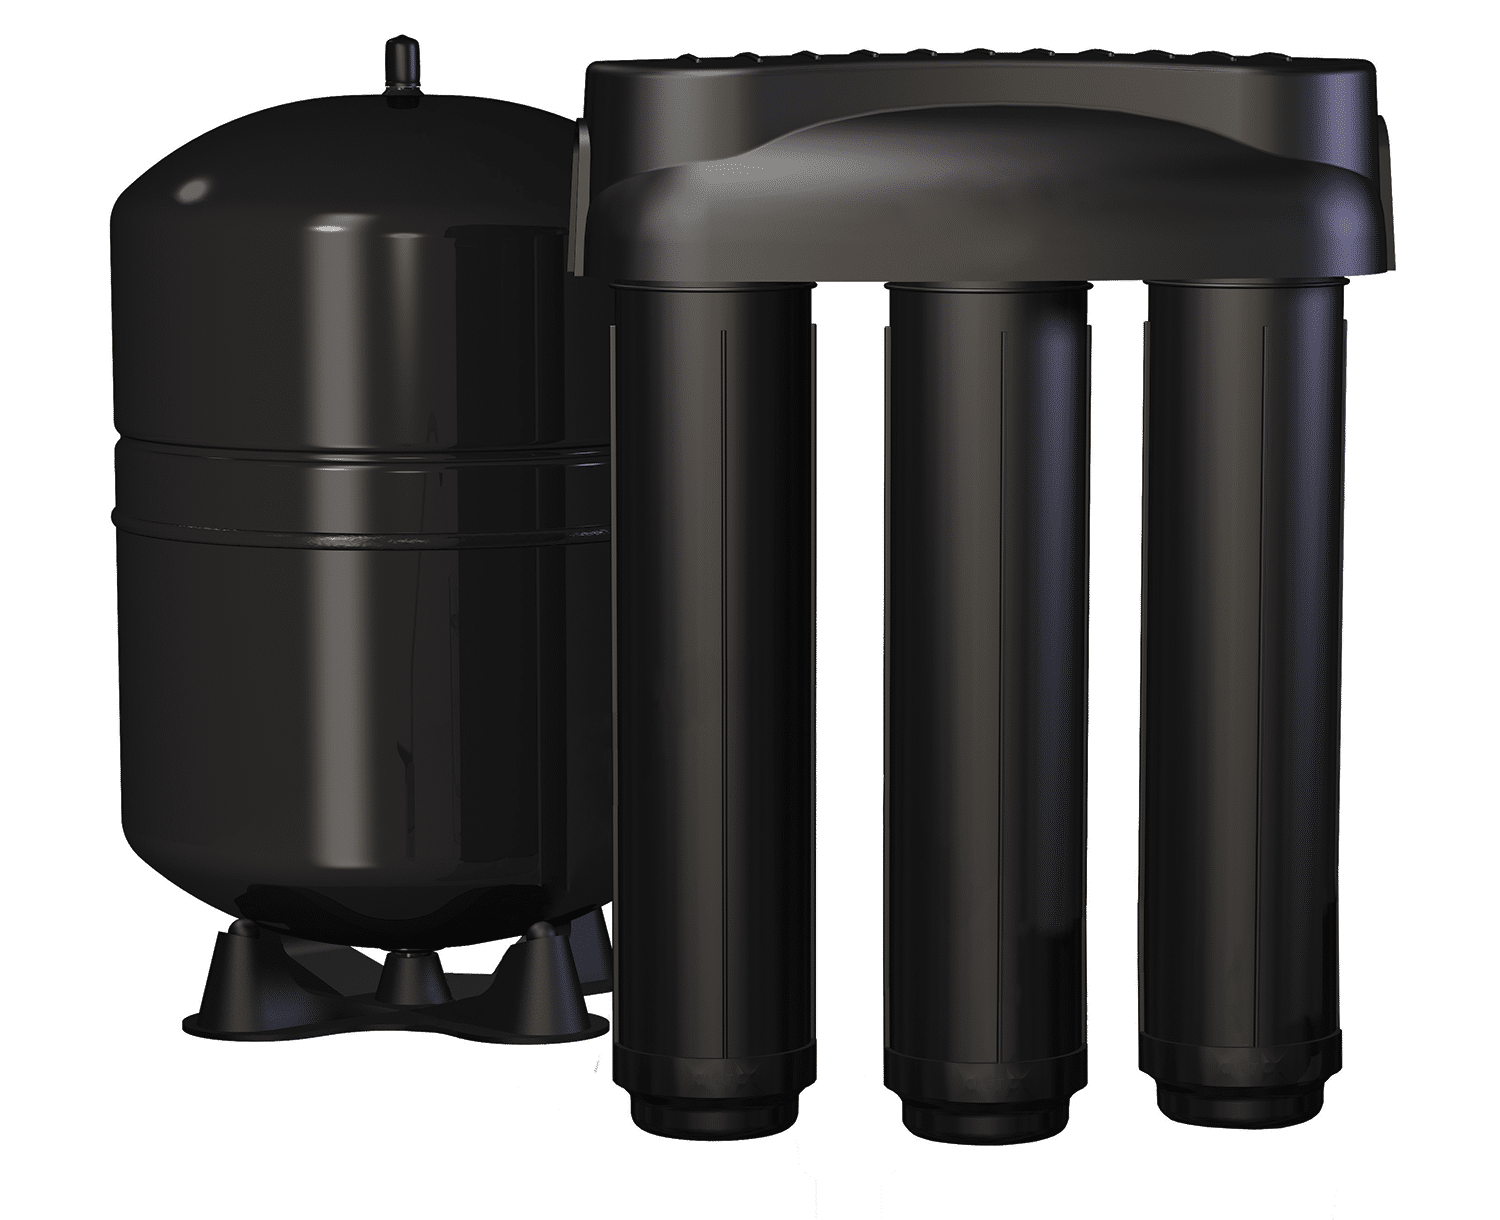 Kinetico K2 Drinking Water Filter Watersoft